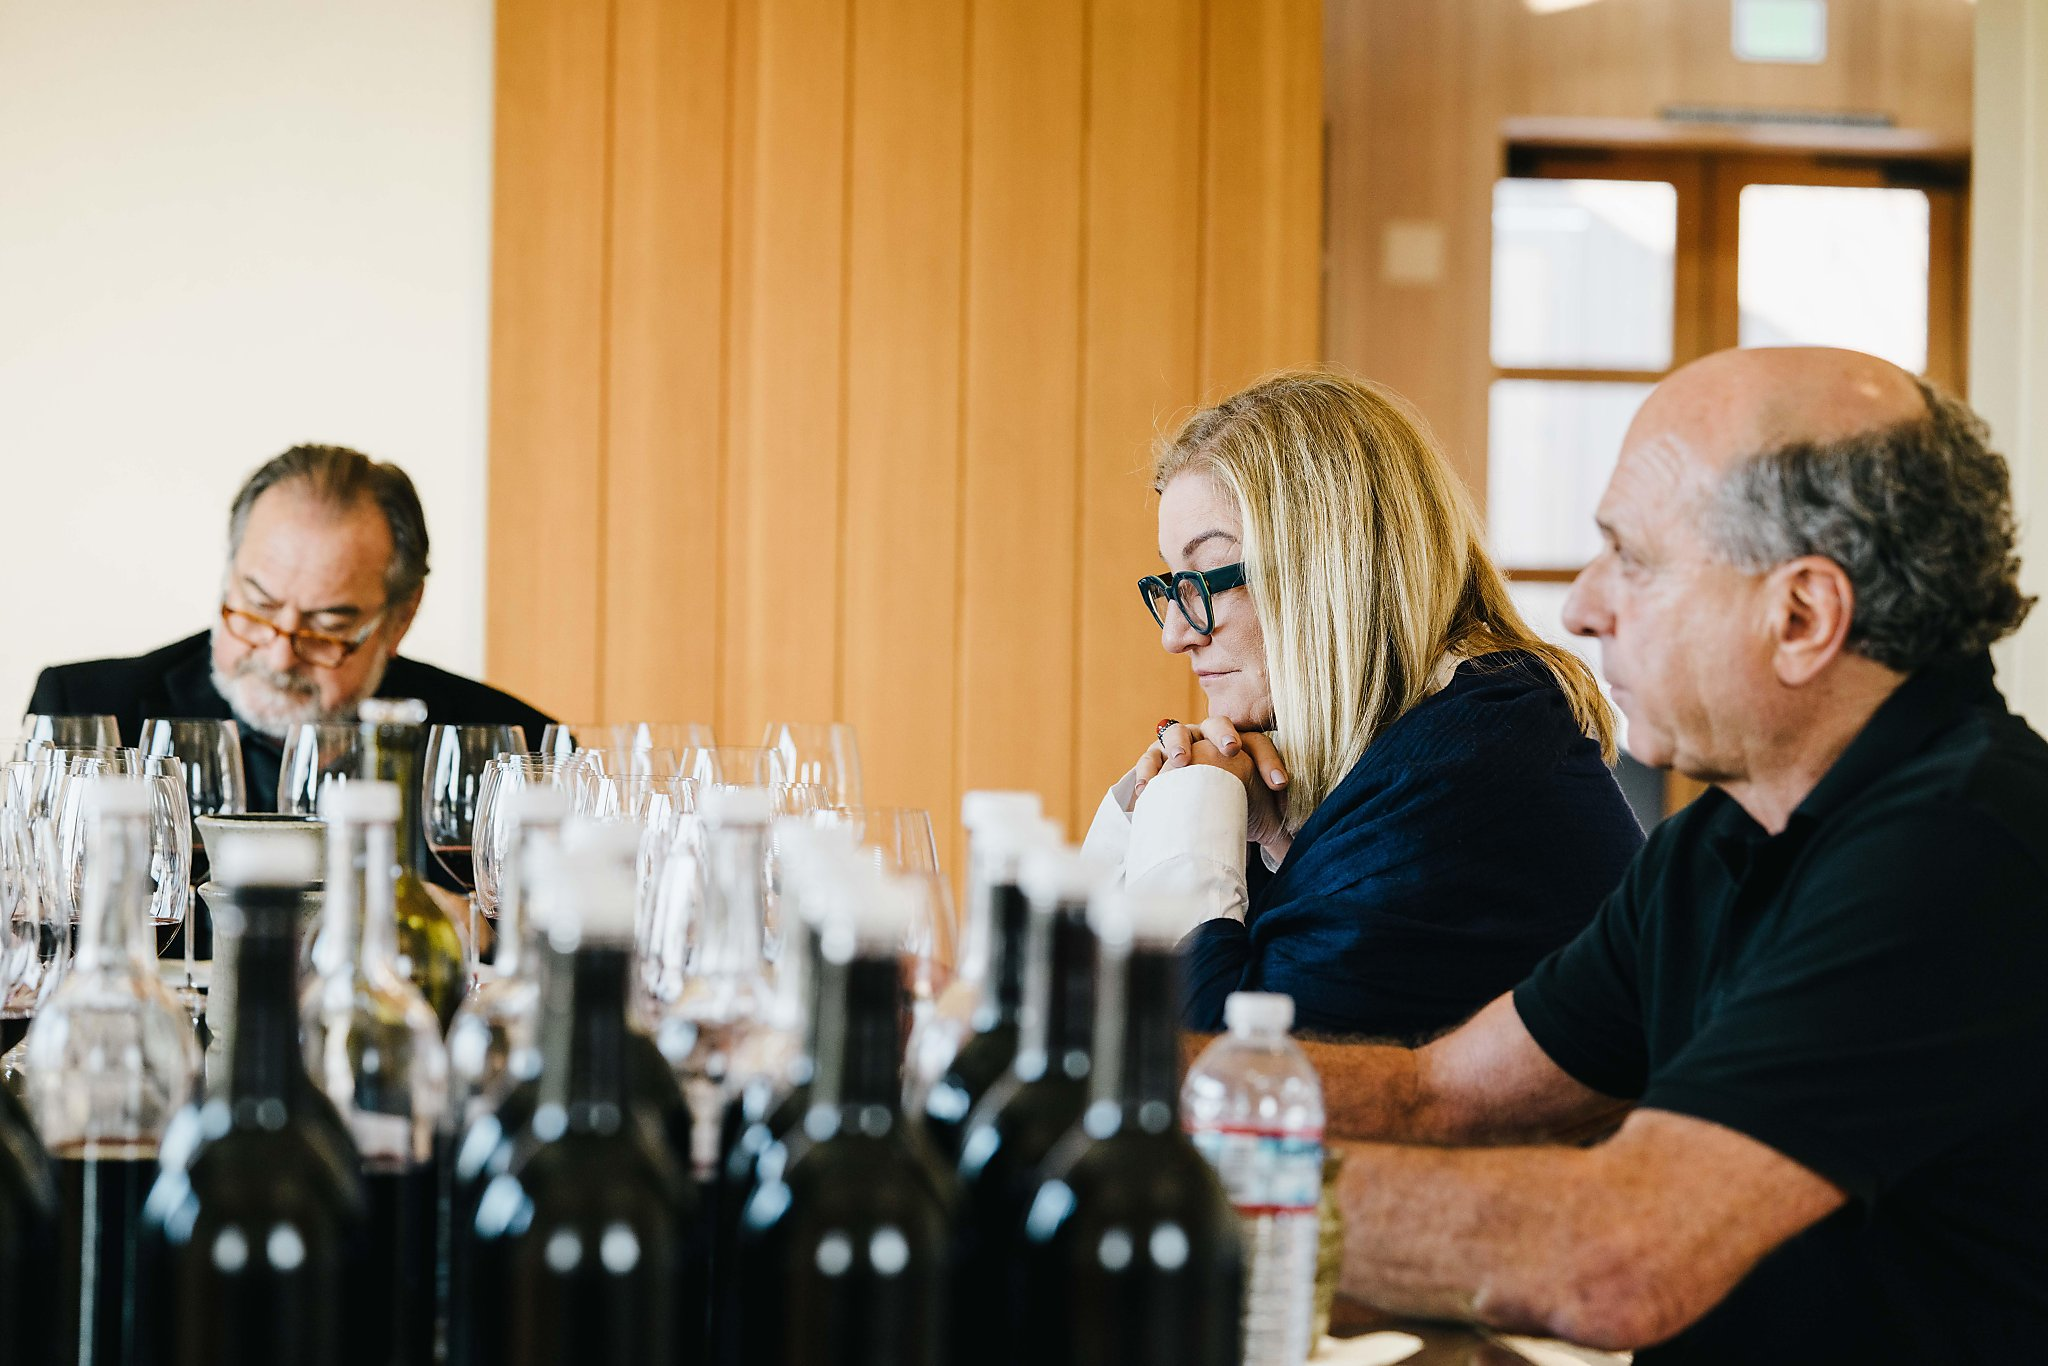 A new Napa vintner just made an ambitious Rutherford winery purchase, with plans for $275 Cabernet